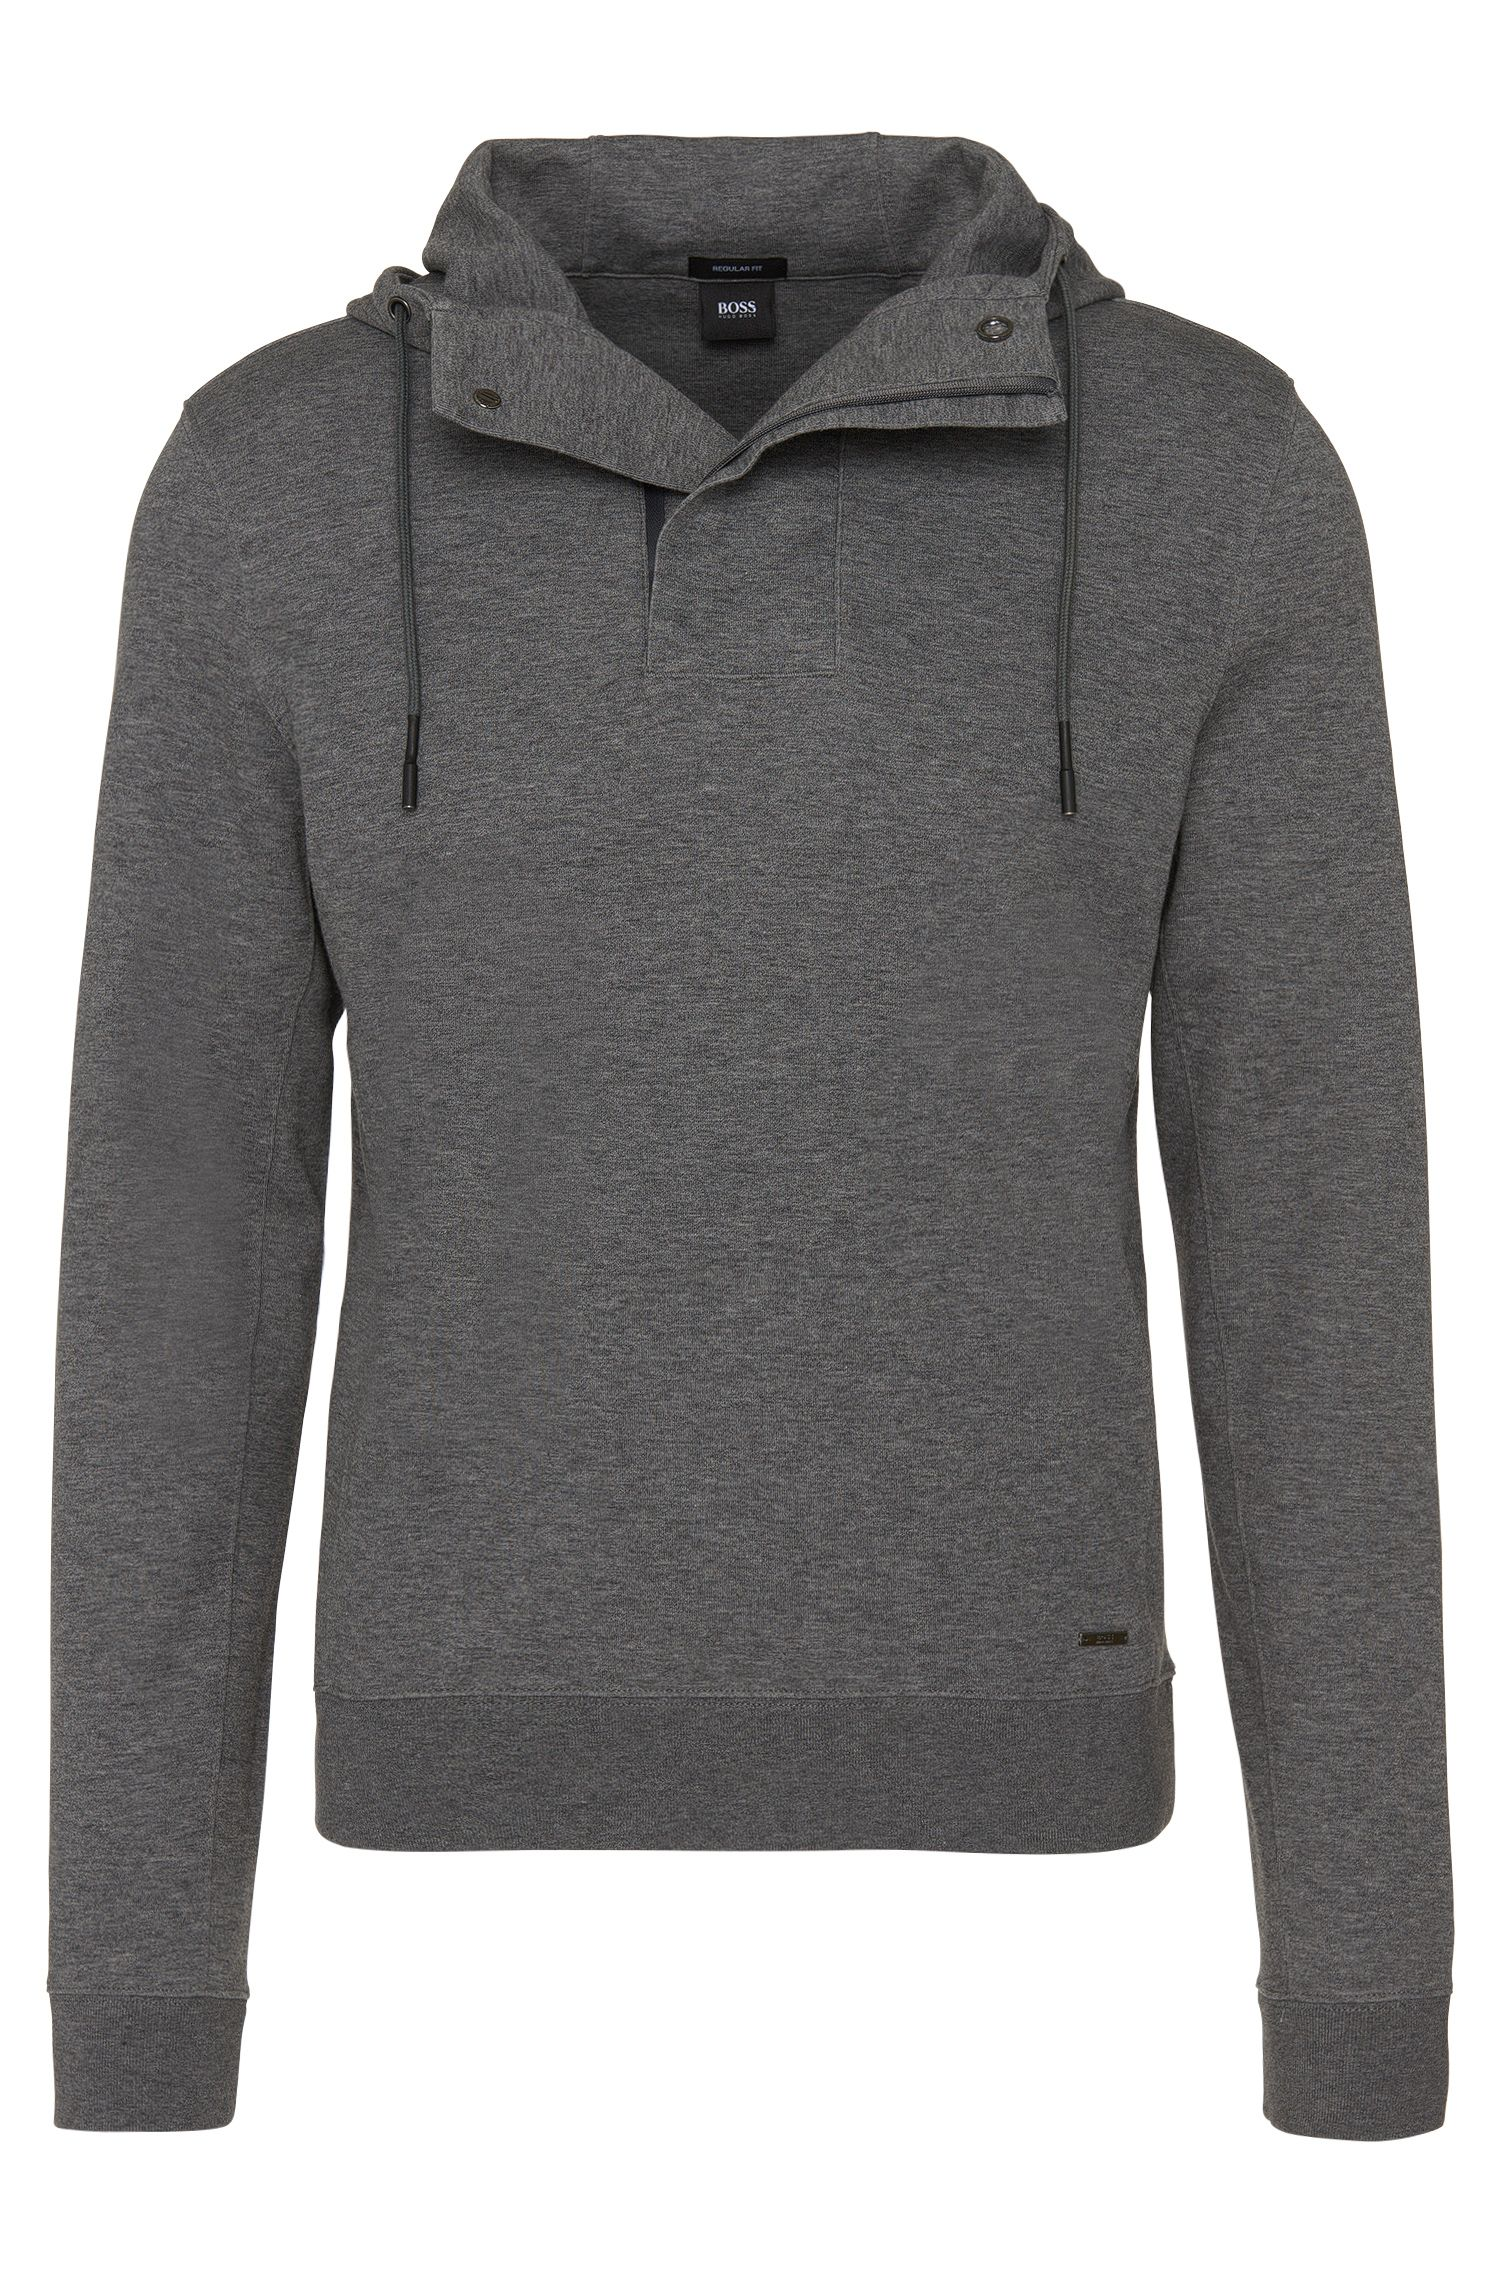 Regular-Fit Kapuzen-Sweatshirt aus Baumwoll-Mix: 'Seeger 02'